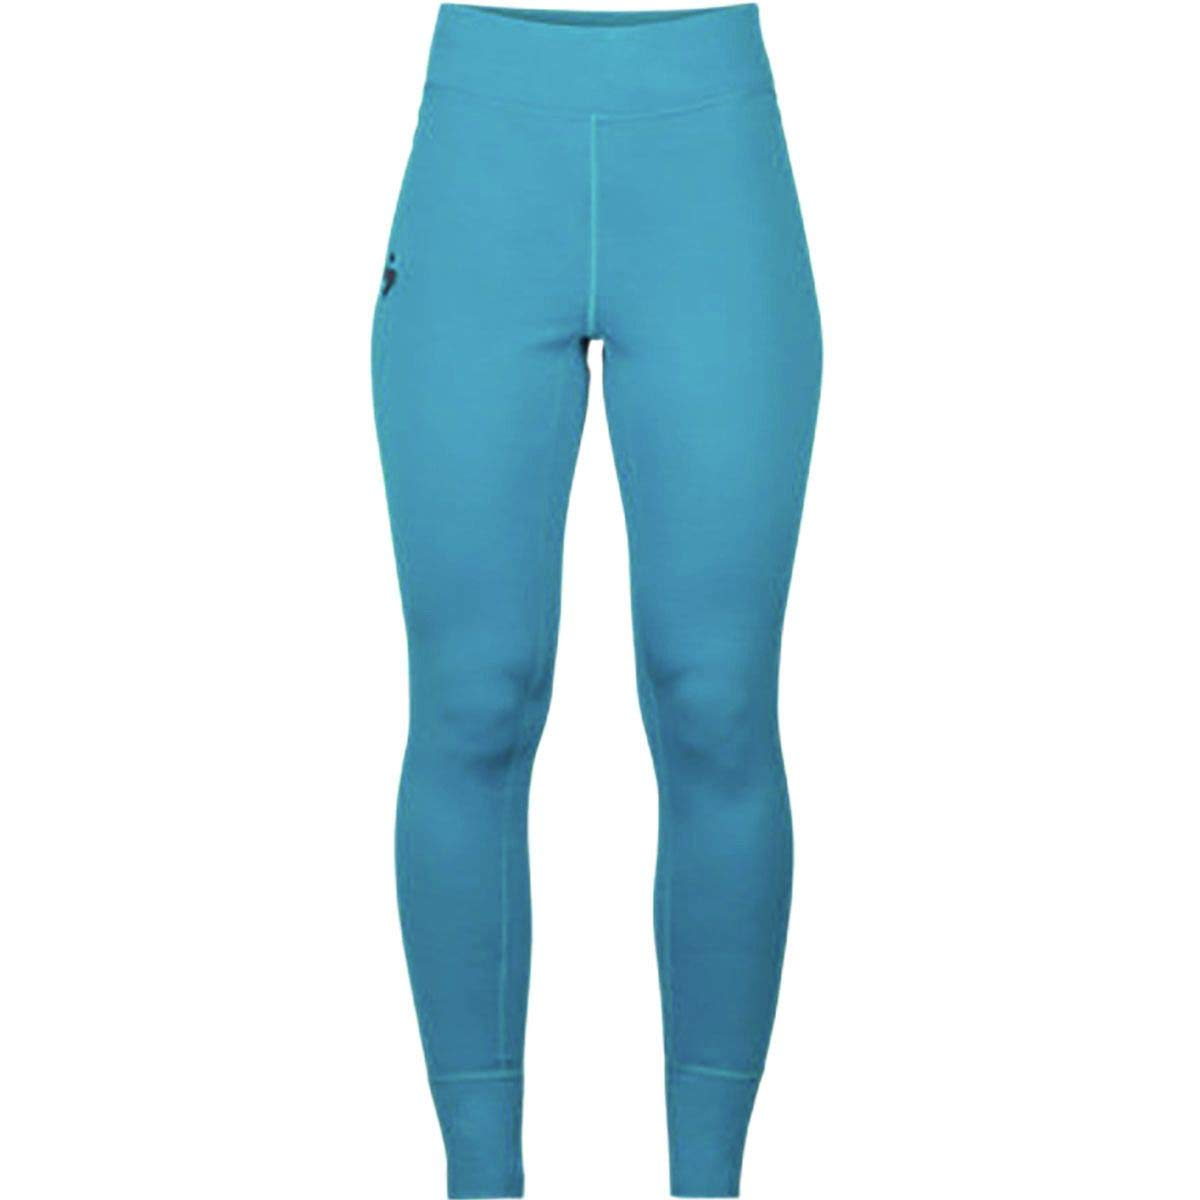 Sweet Protection Alpine 17.5/200 Pant - Women's Panama Blue, M by Sweet Protection